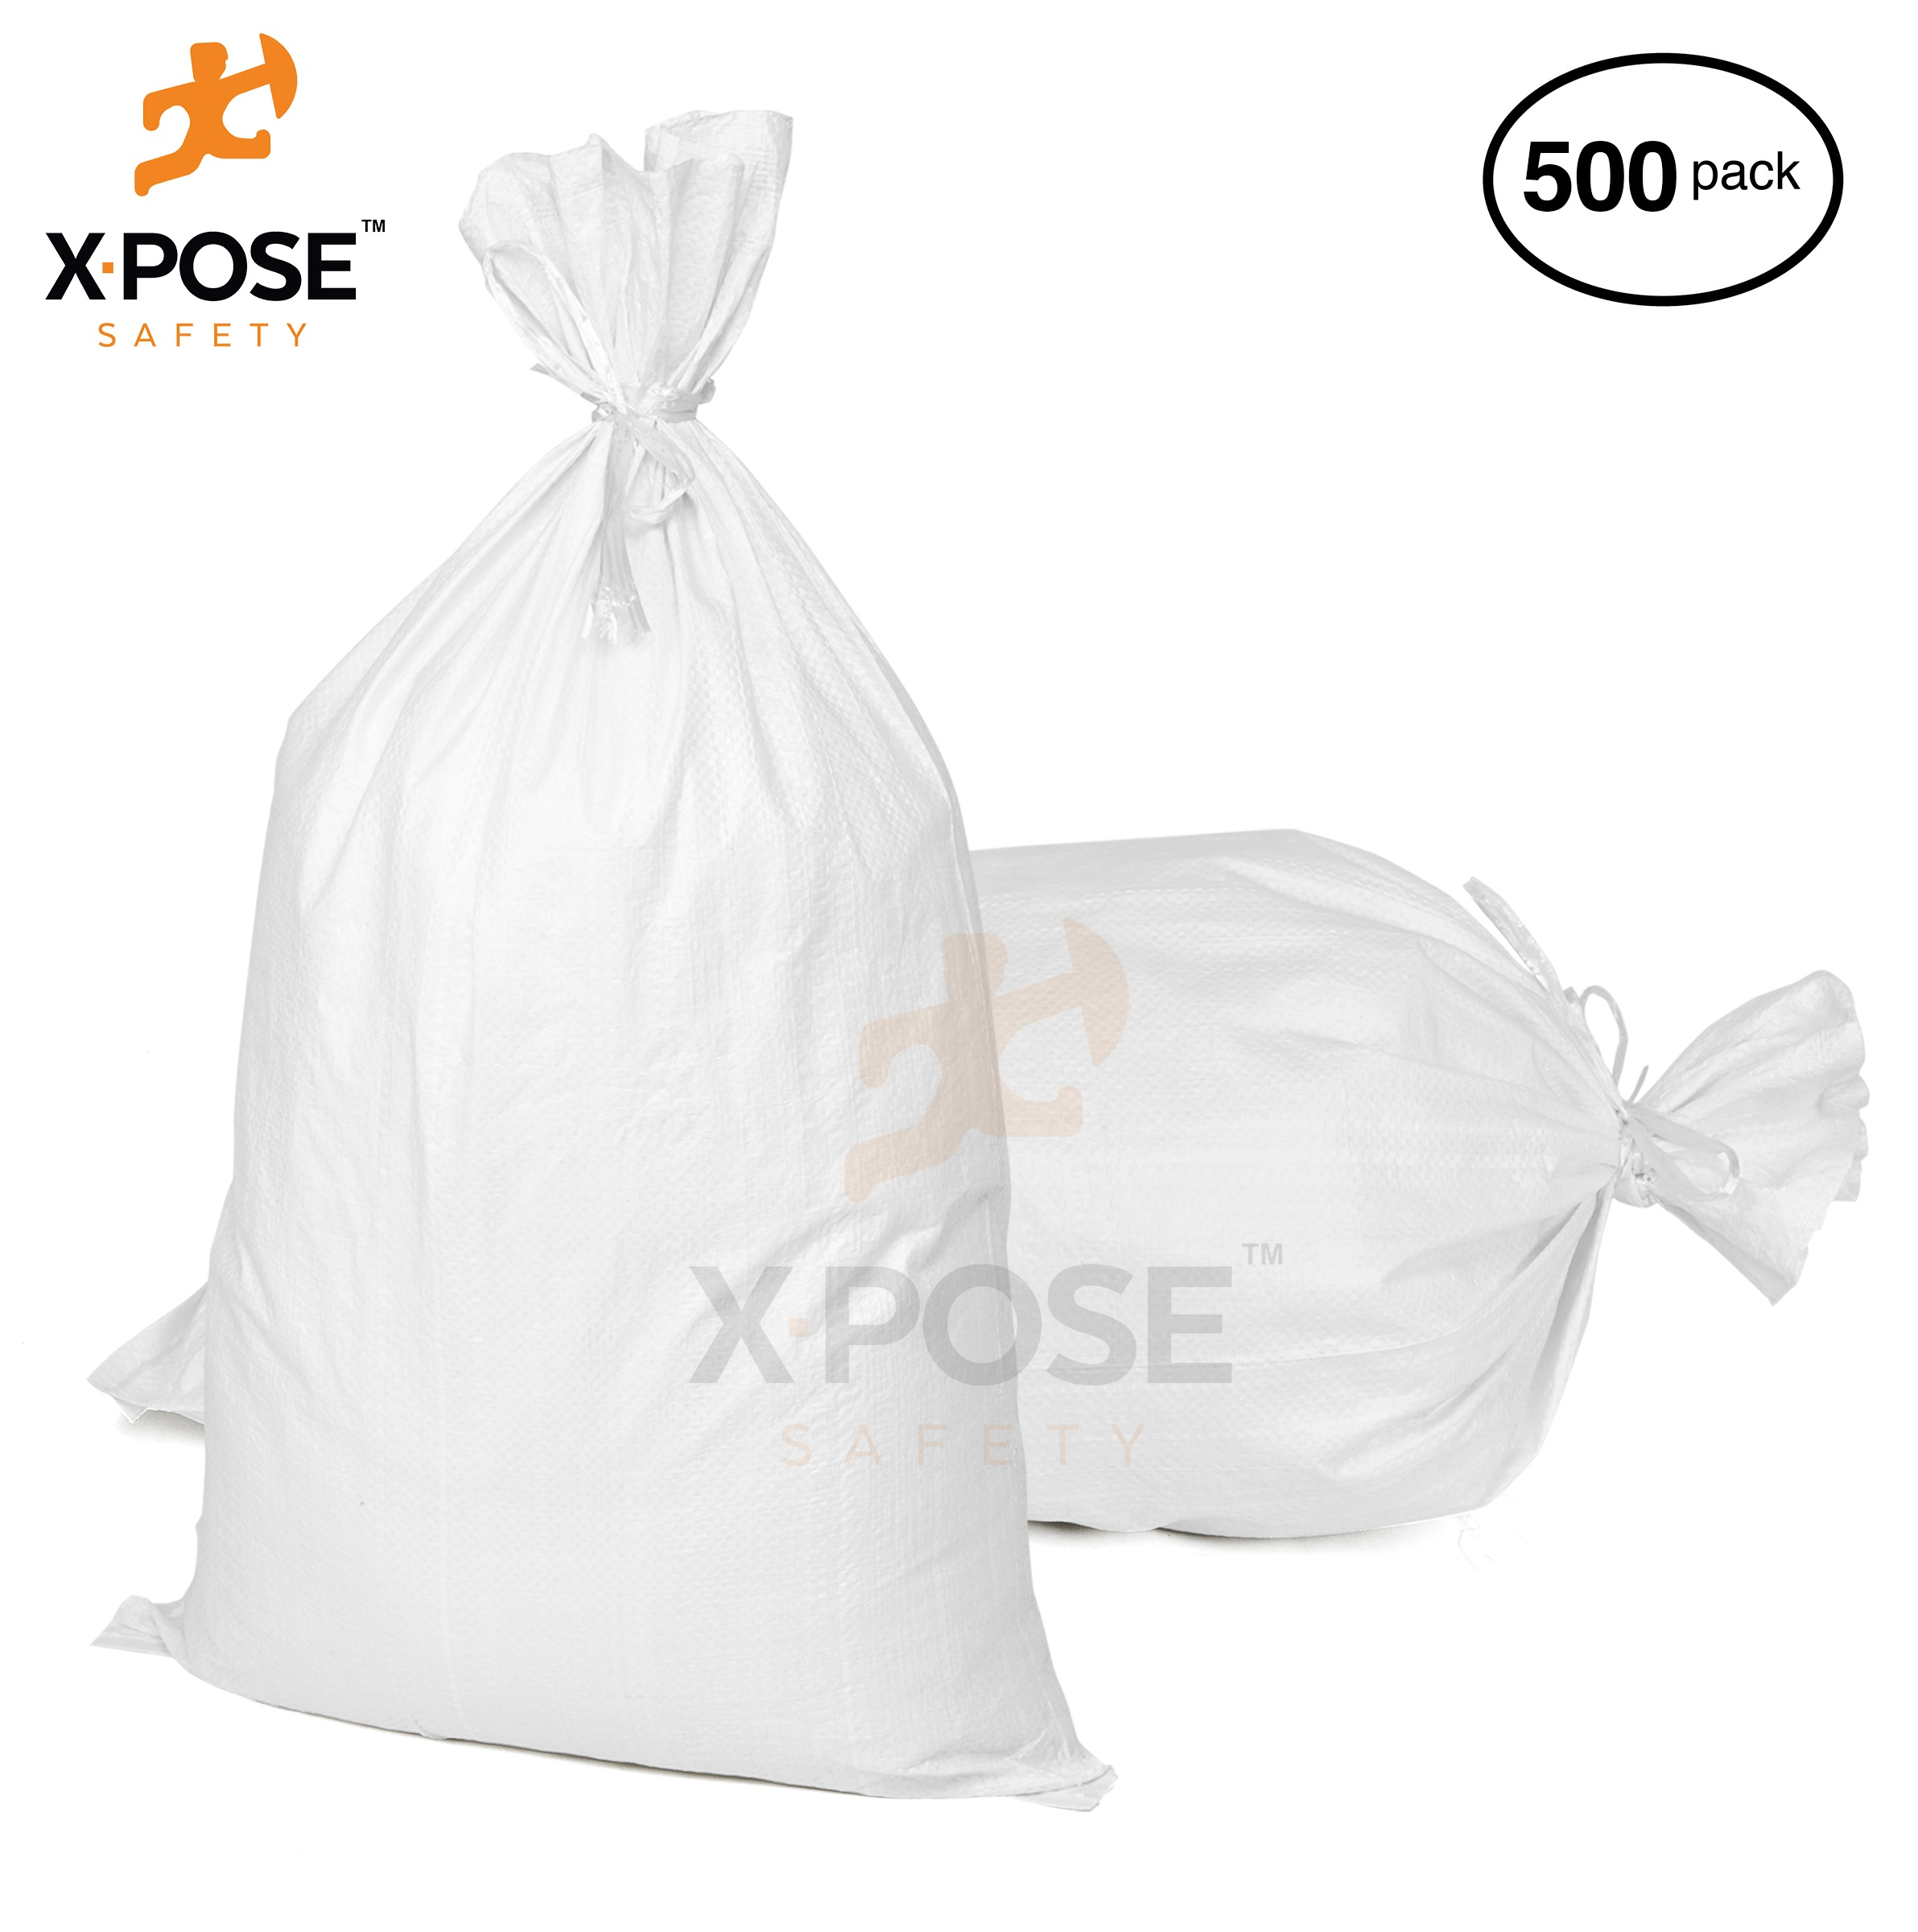 """17"""" x27"""" Empty Sand Bags, 500 Pack with Ties Heavy Duty Woven Polypropylene, UV Sun Protection, Dust, Water and Oil Resistant - Home and Industrial - Floods, Photography and More - by Xpose Safety WSB-1727-500"""